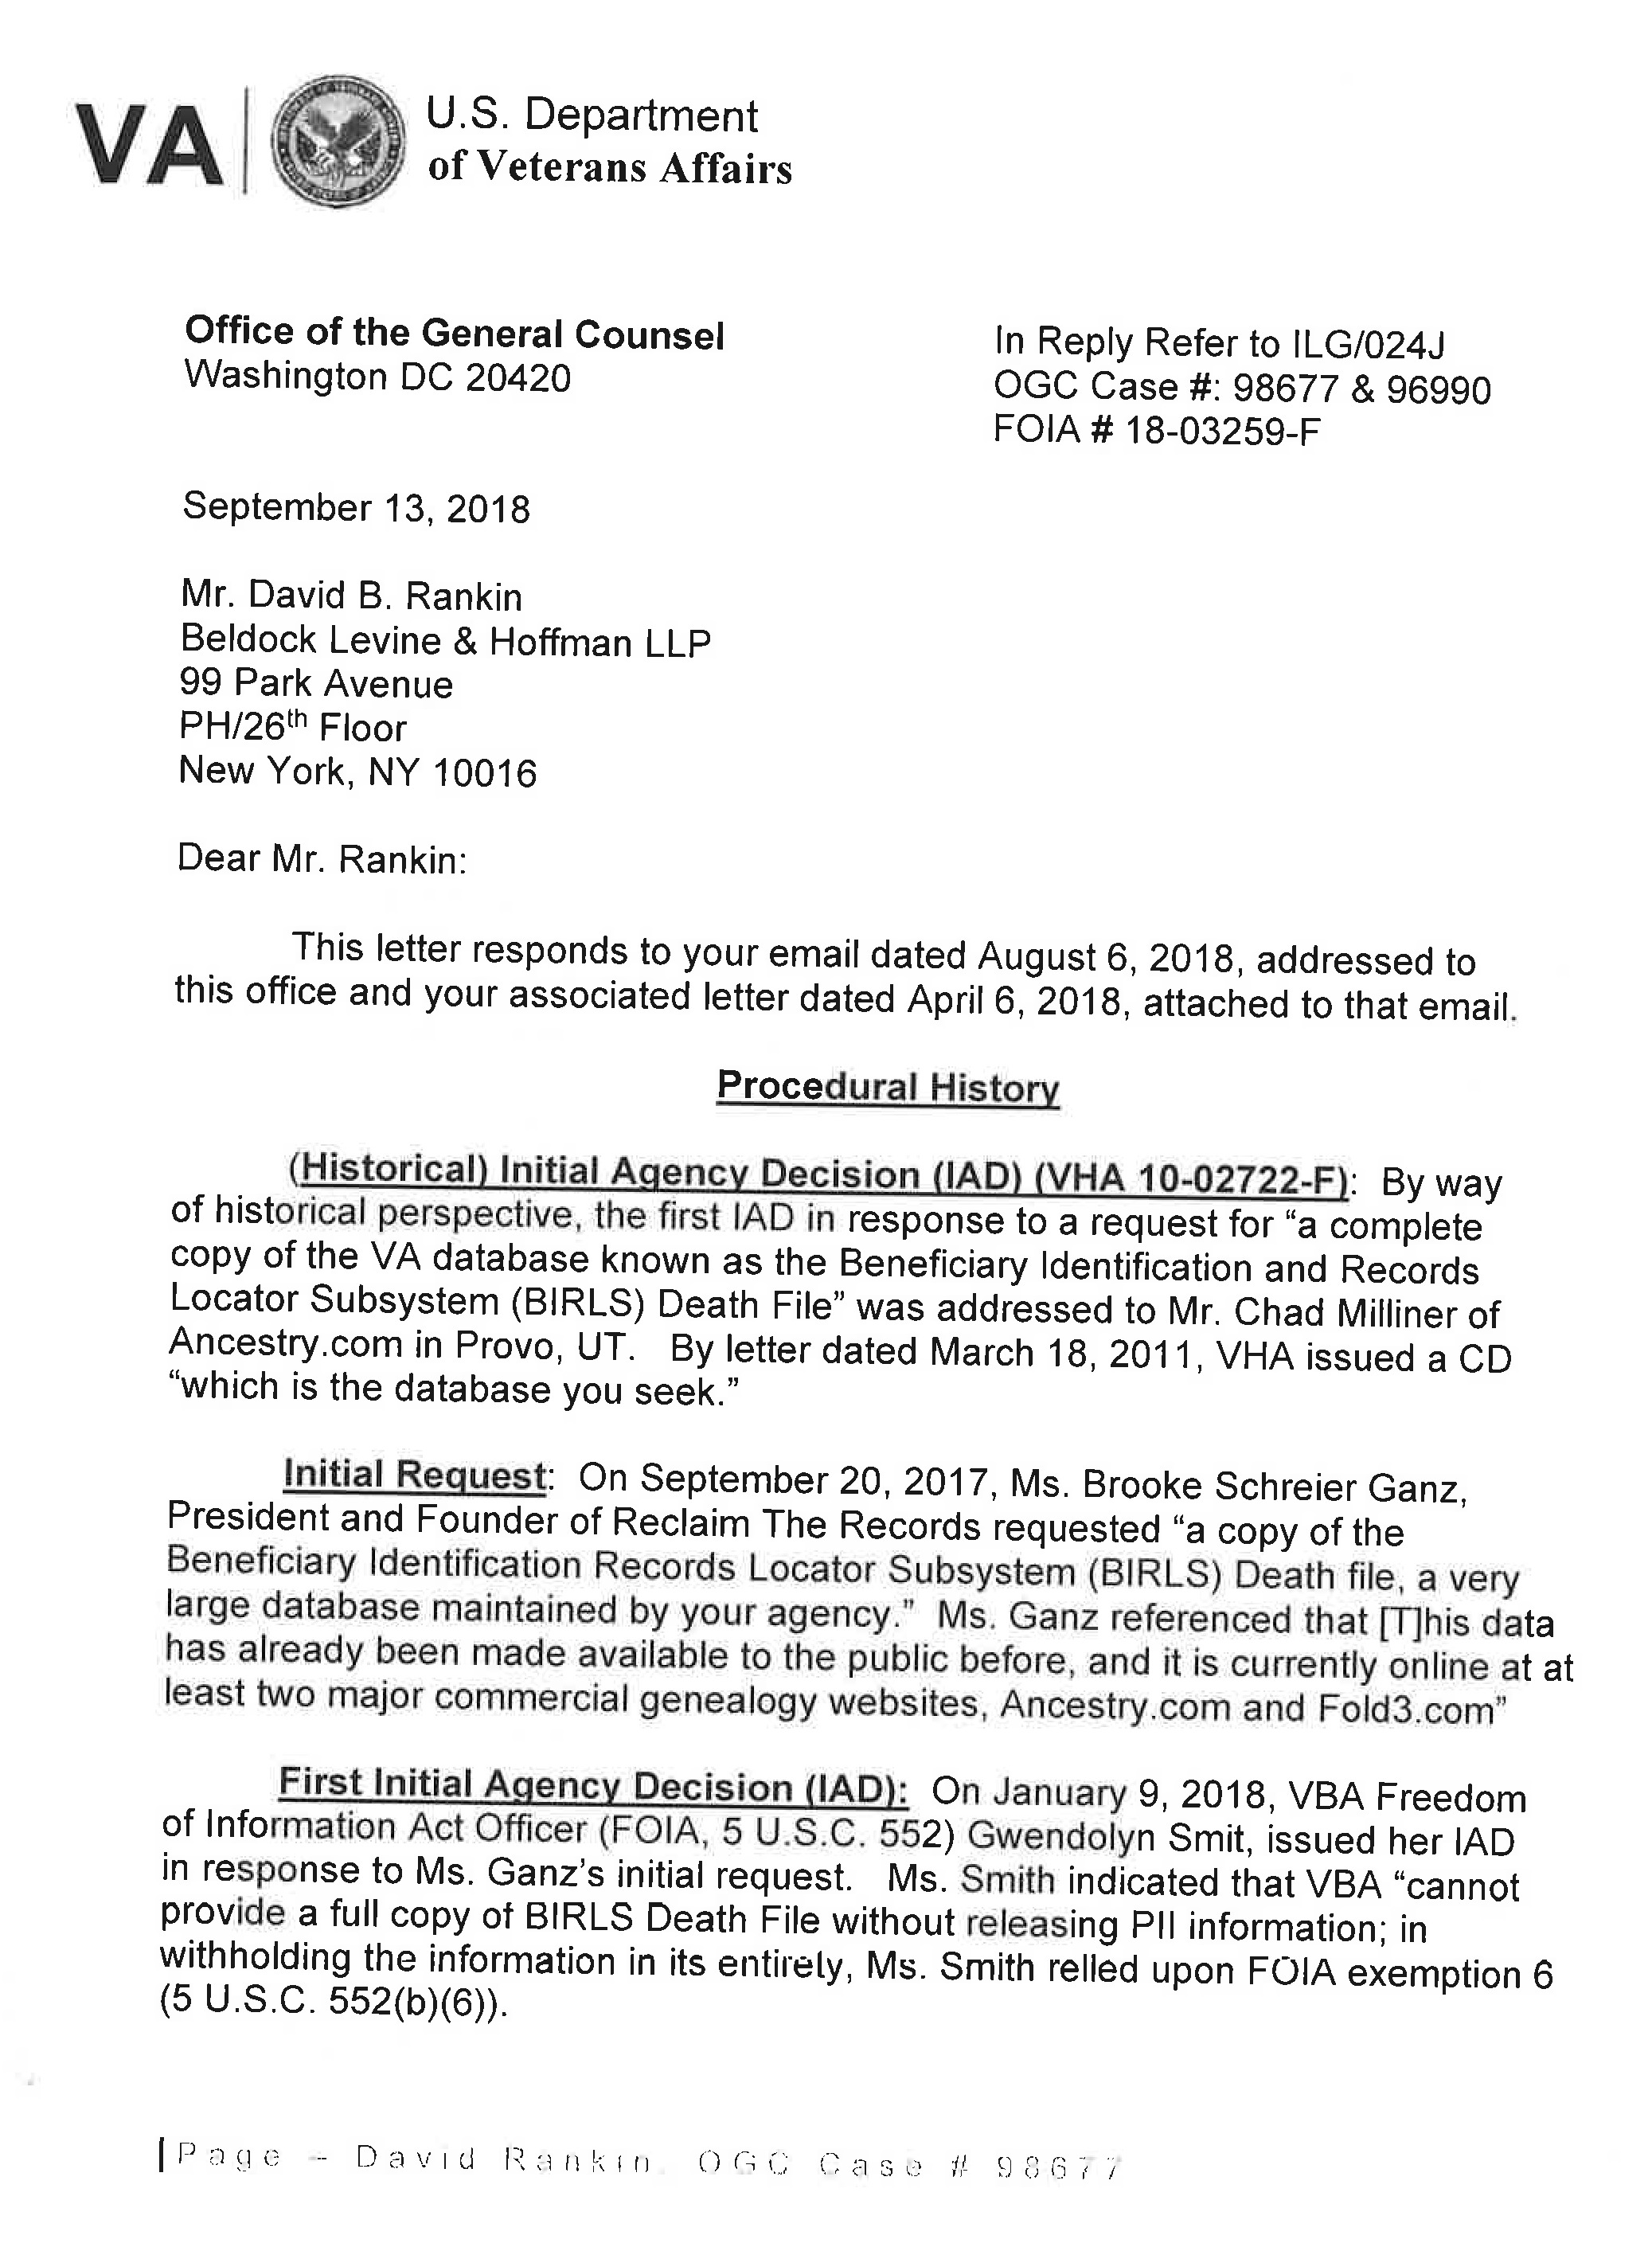 Response to FOIA lawsuit from the VA